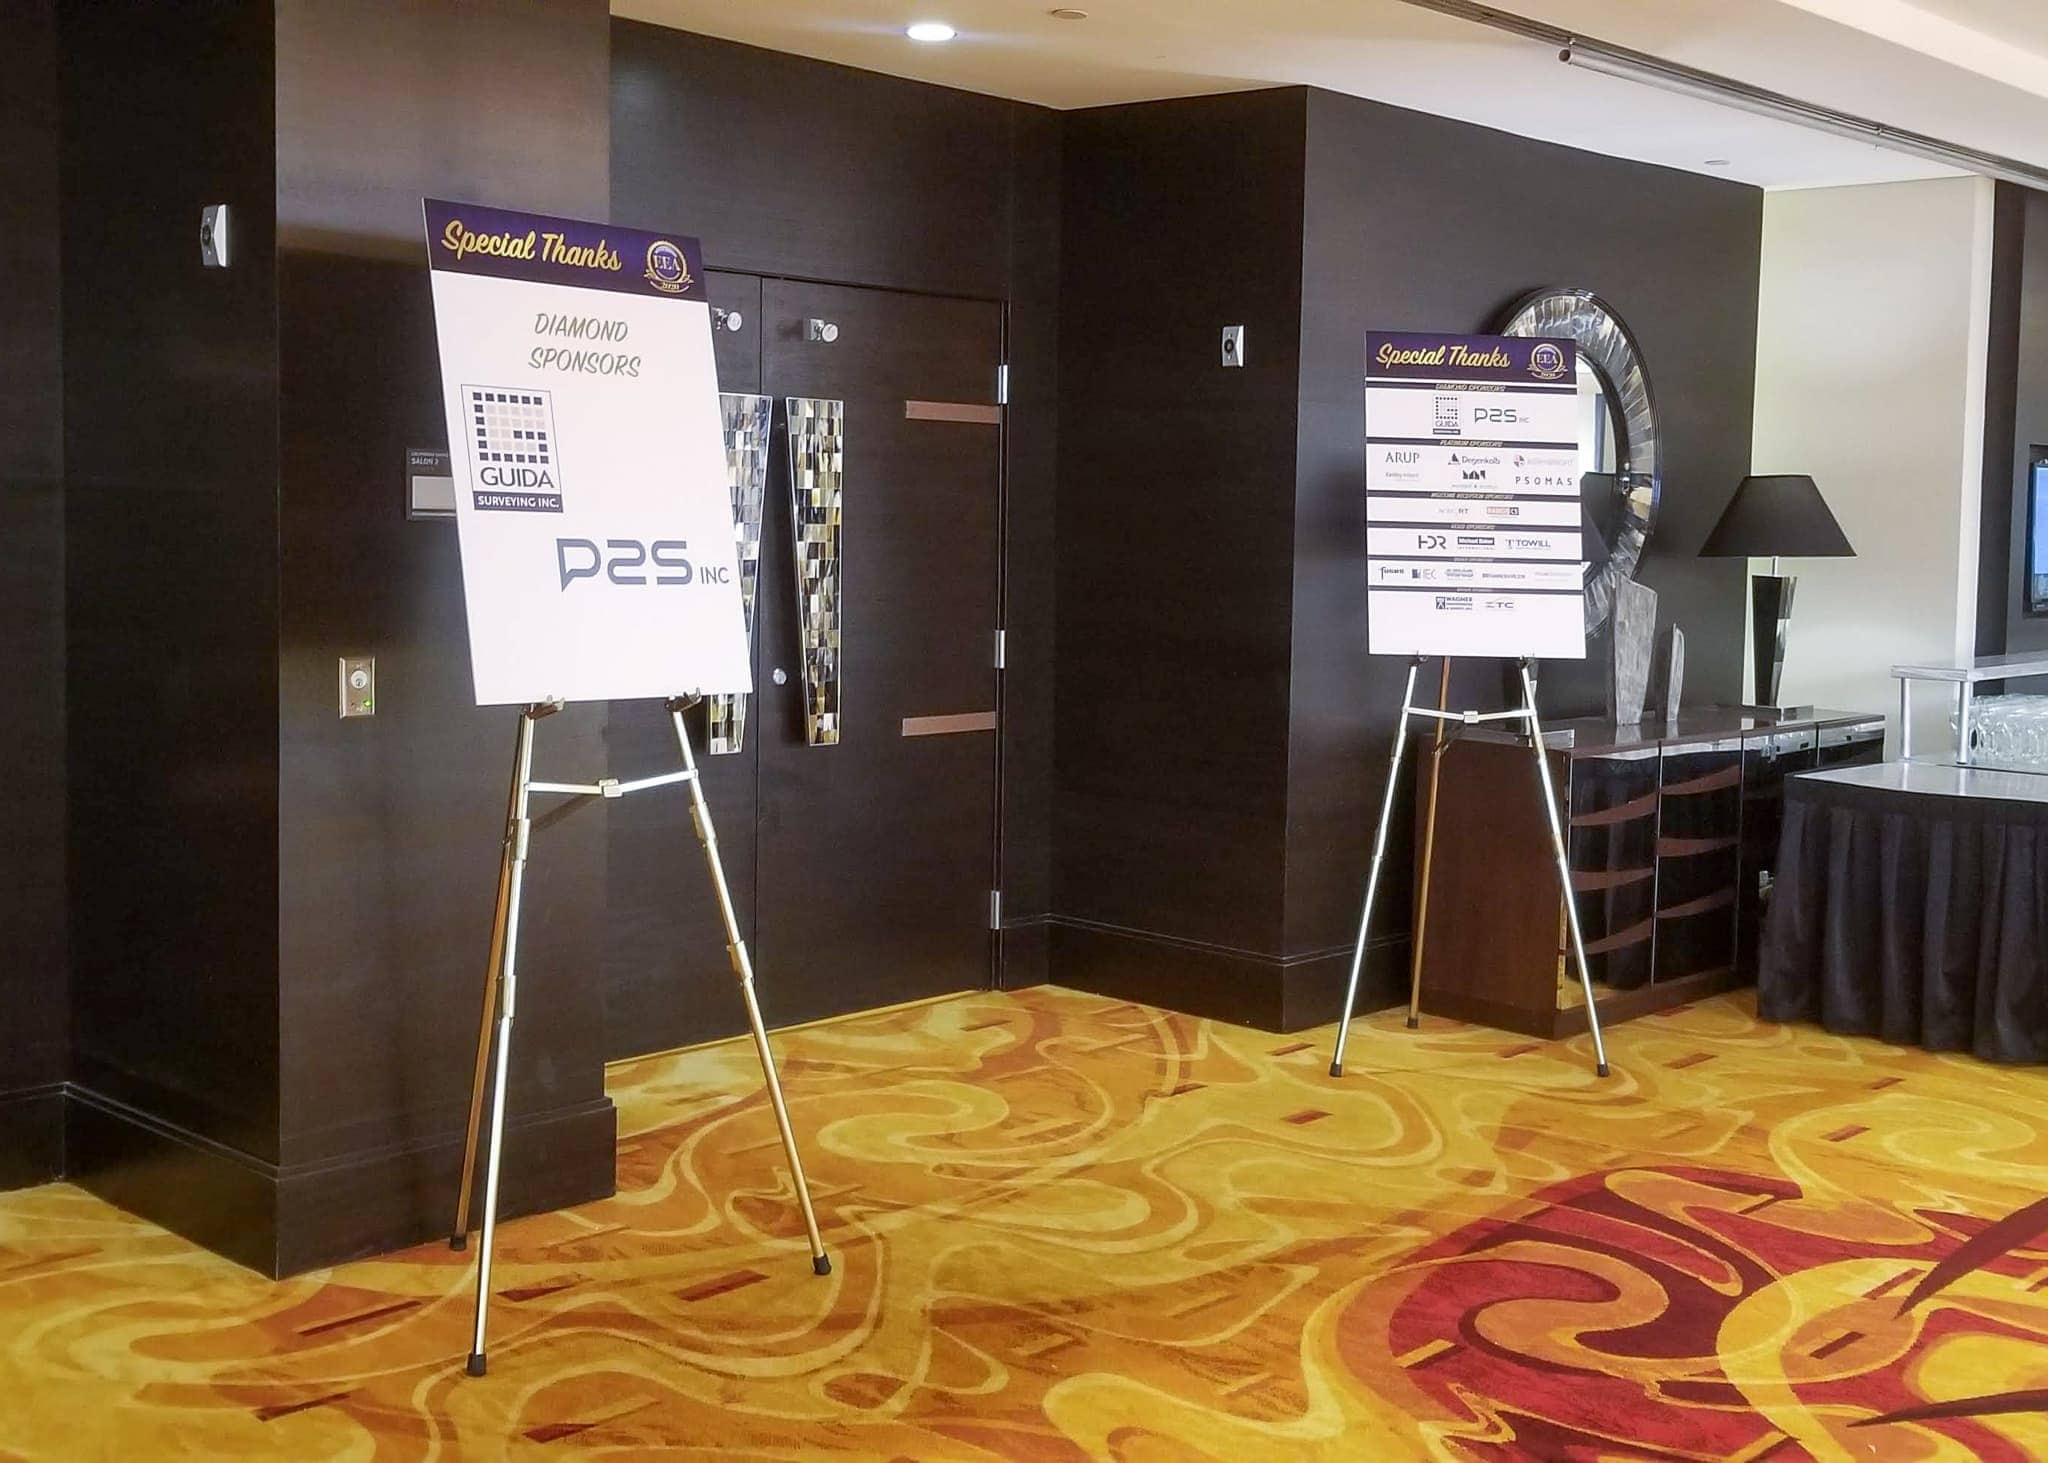 2020 ACEC Engineering Excellence Awards sponsorship boards